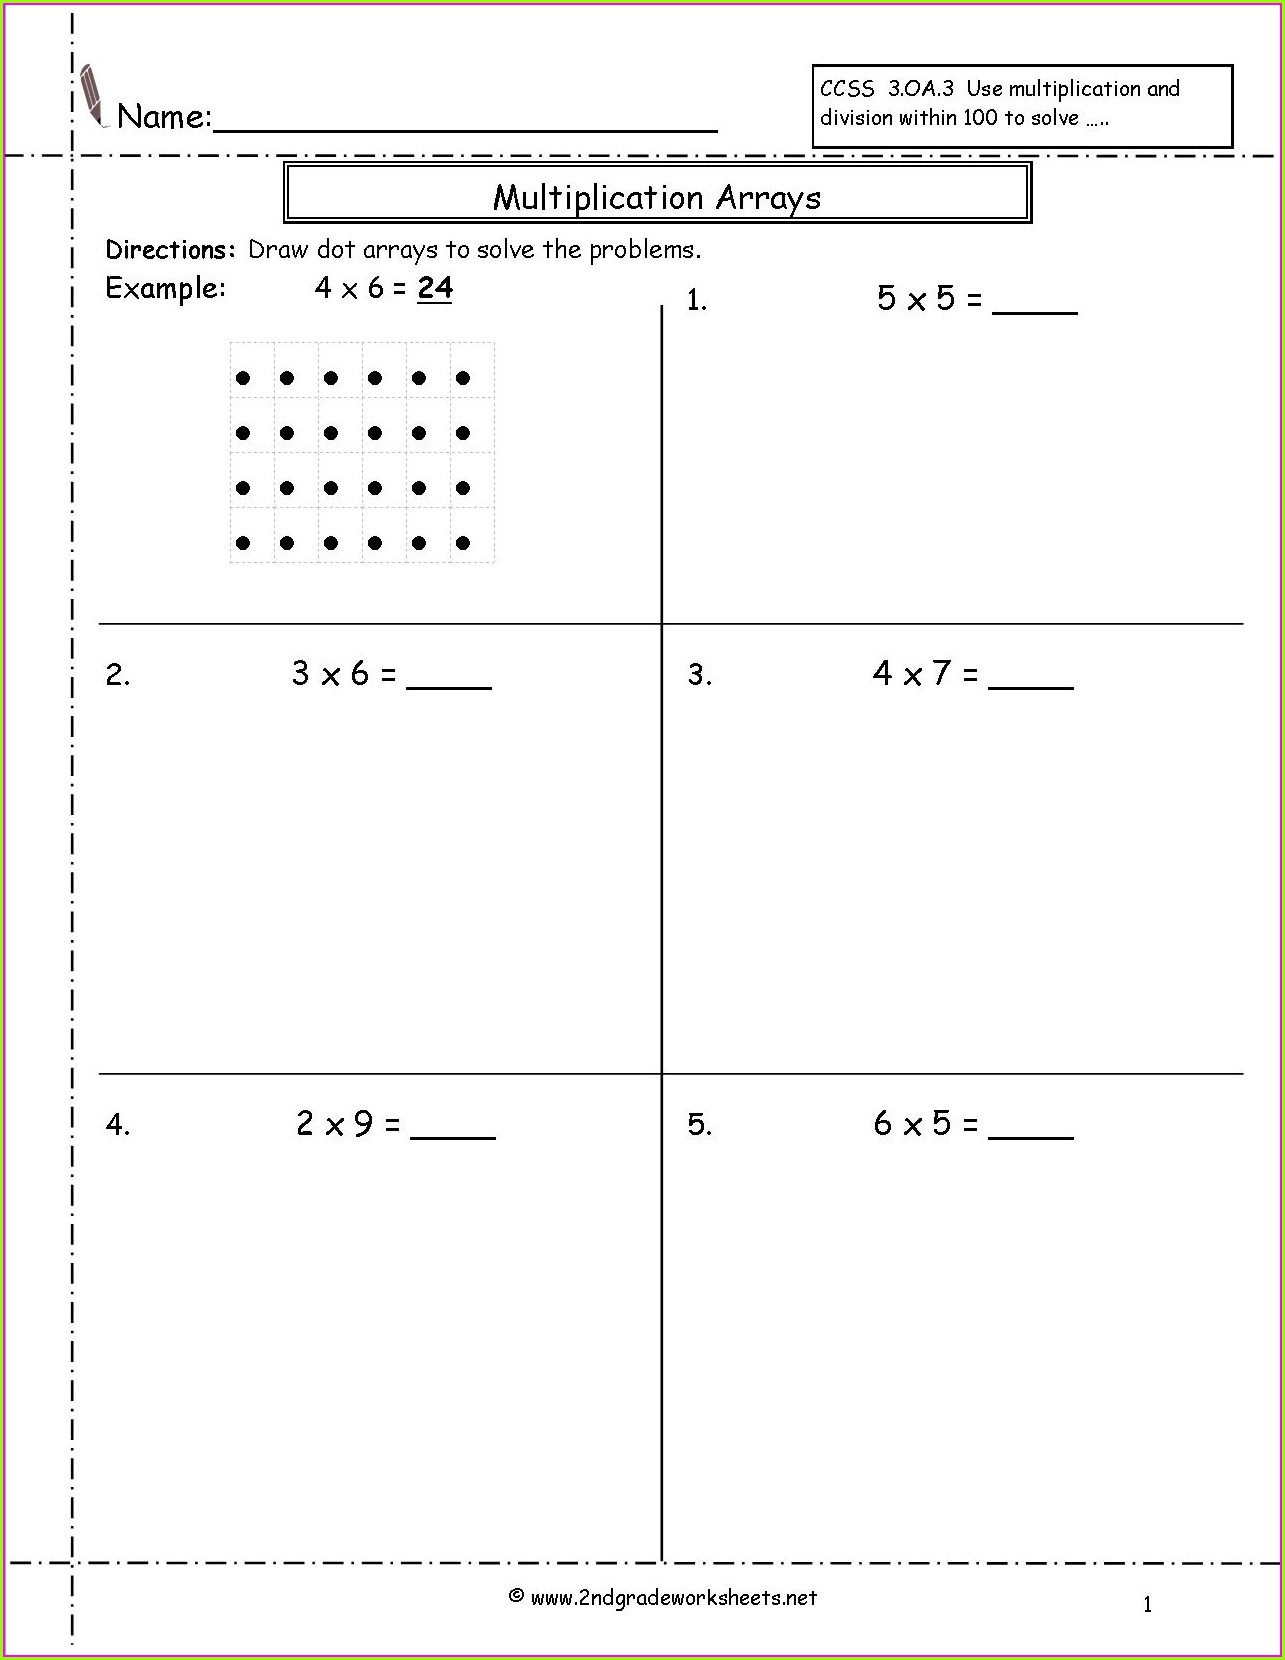 Multiplication Worksheet Year 7